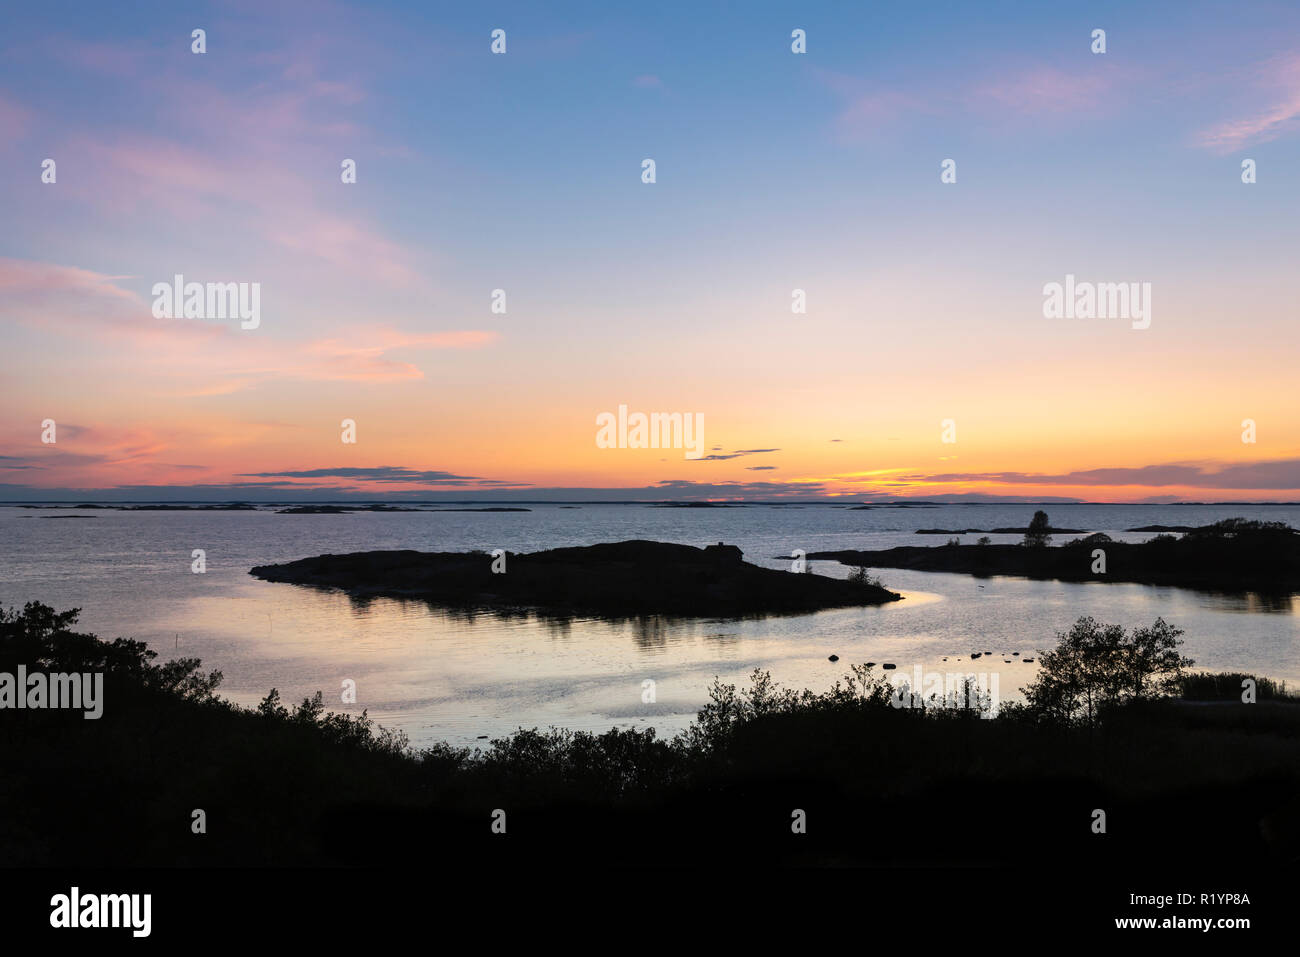 Seascape At Kokar Island Stock Photo Alamy